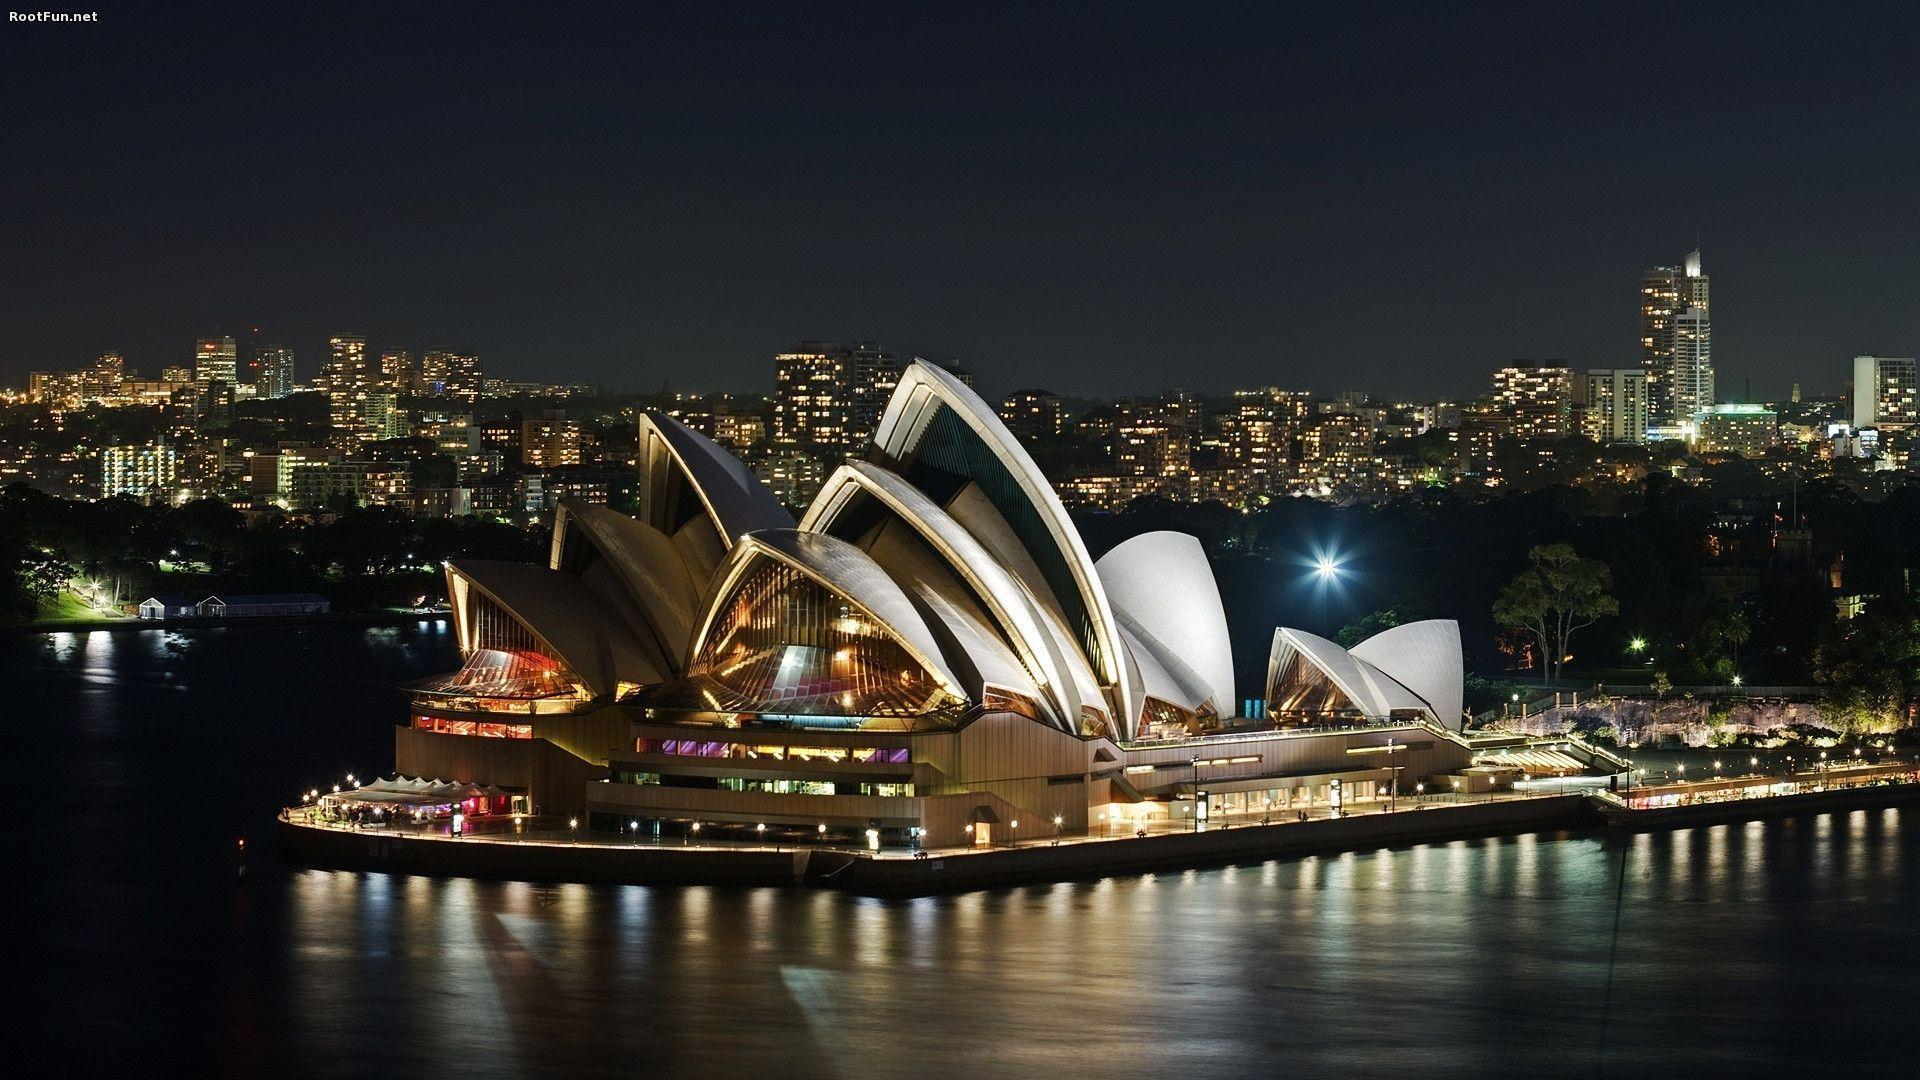 House wallpaper opera sydney world places travel images beautiful ...